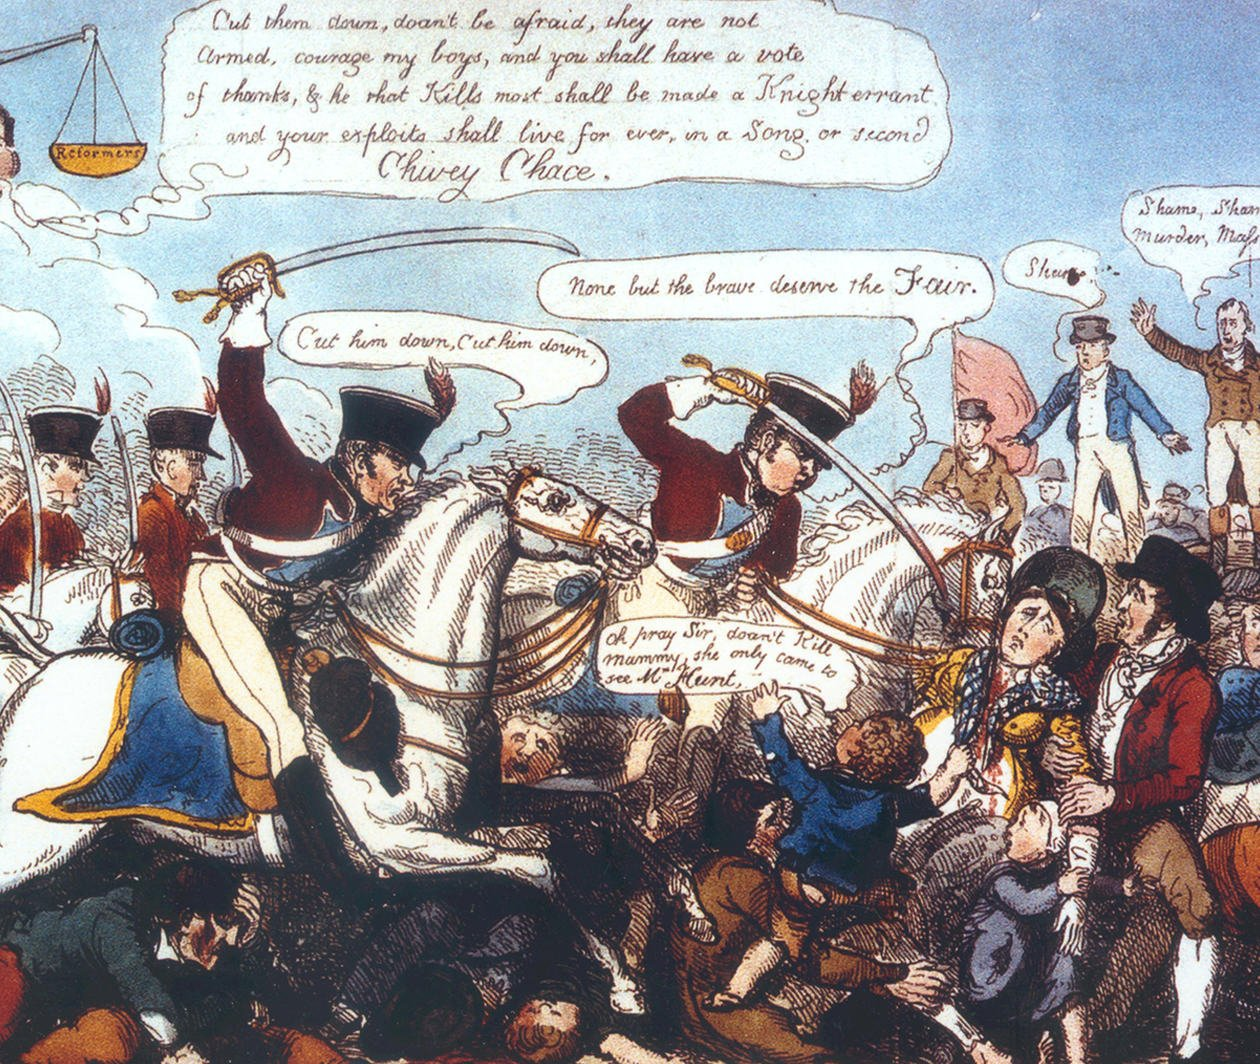 Peterloo to the Pankhursts: Radicalism and Reform in the 19th Century